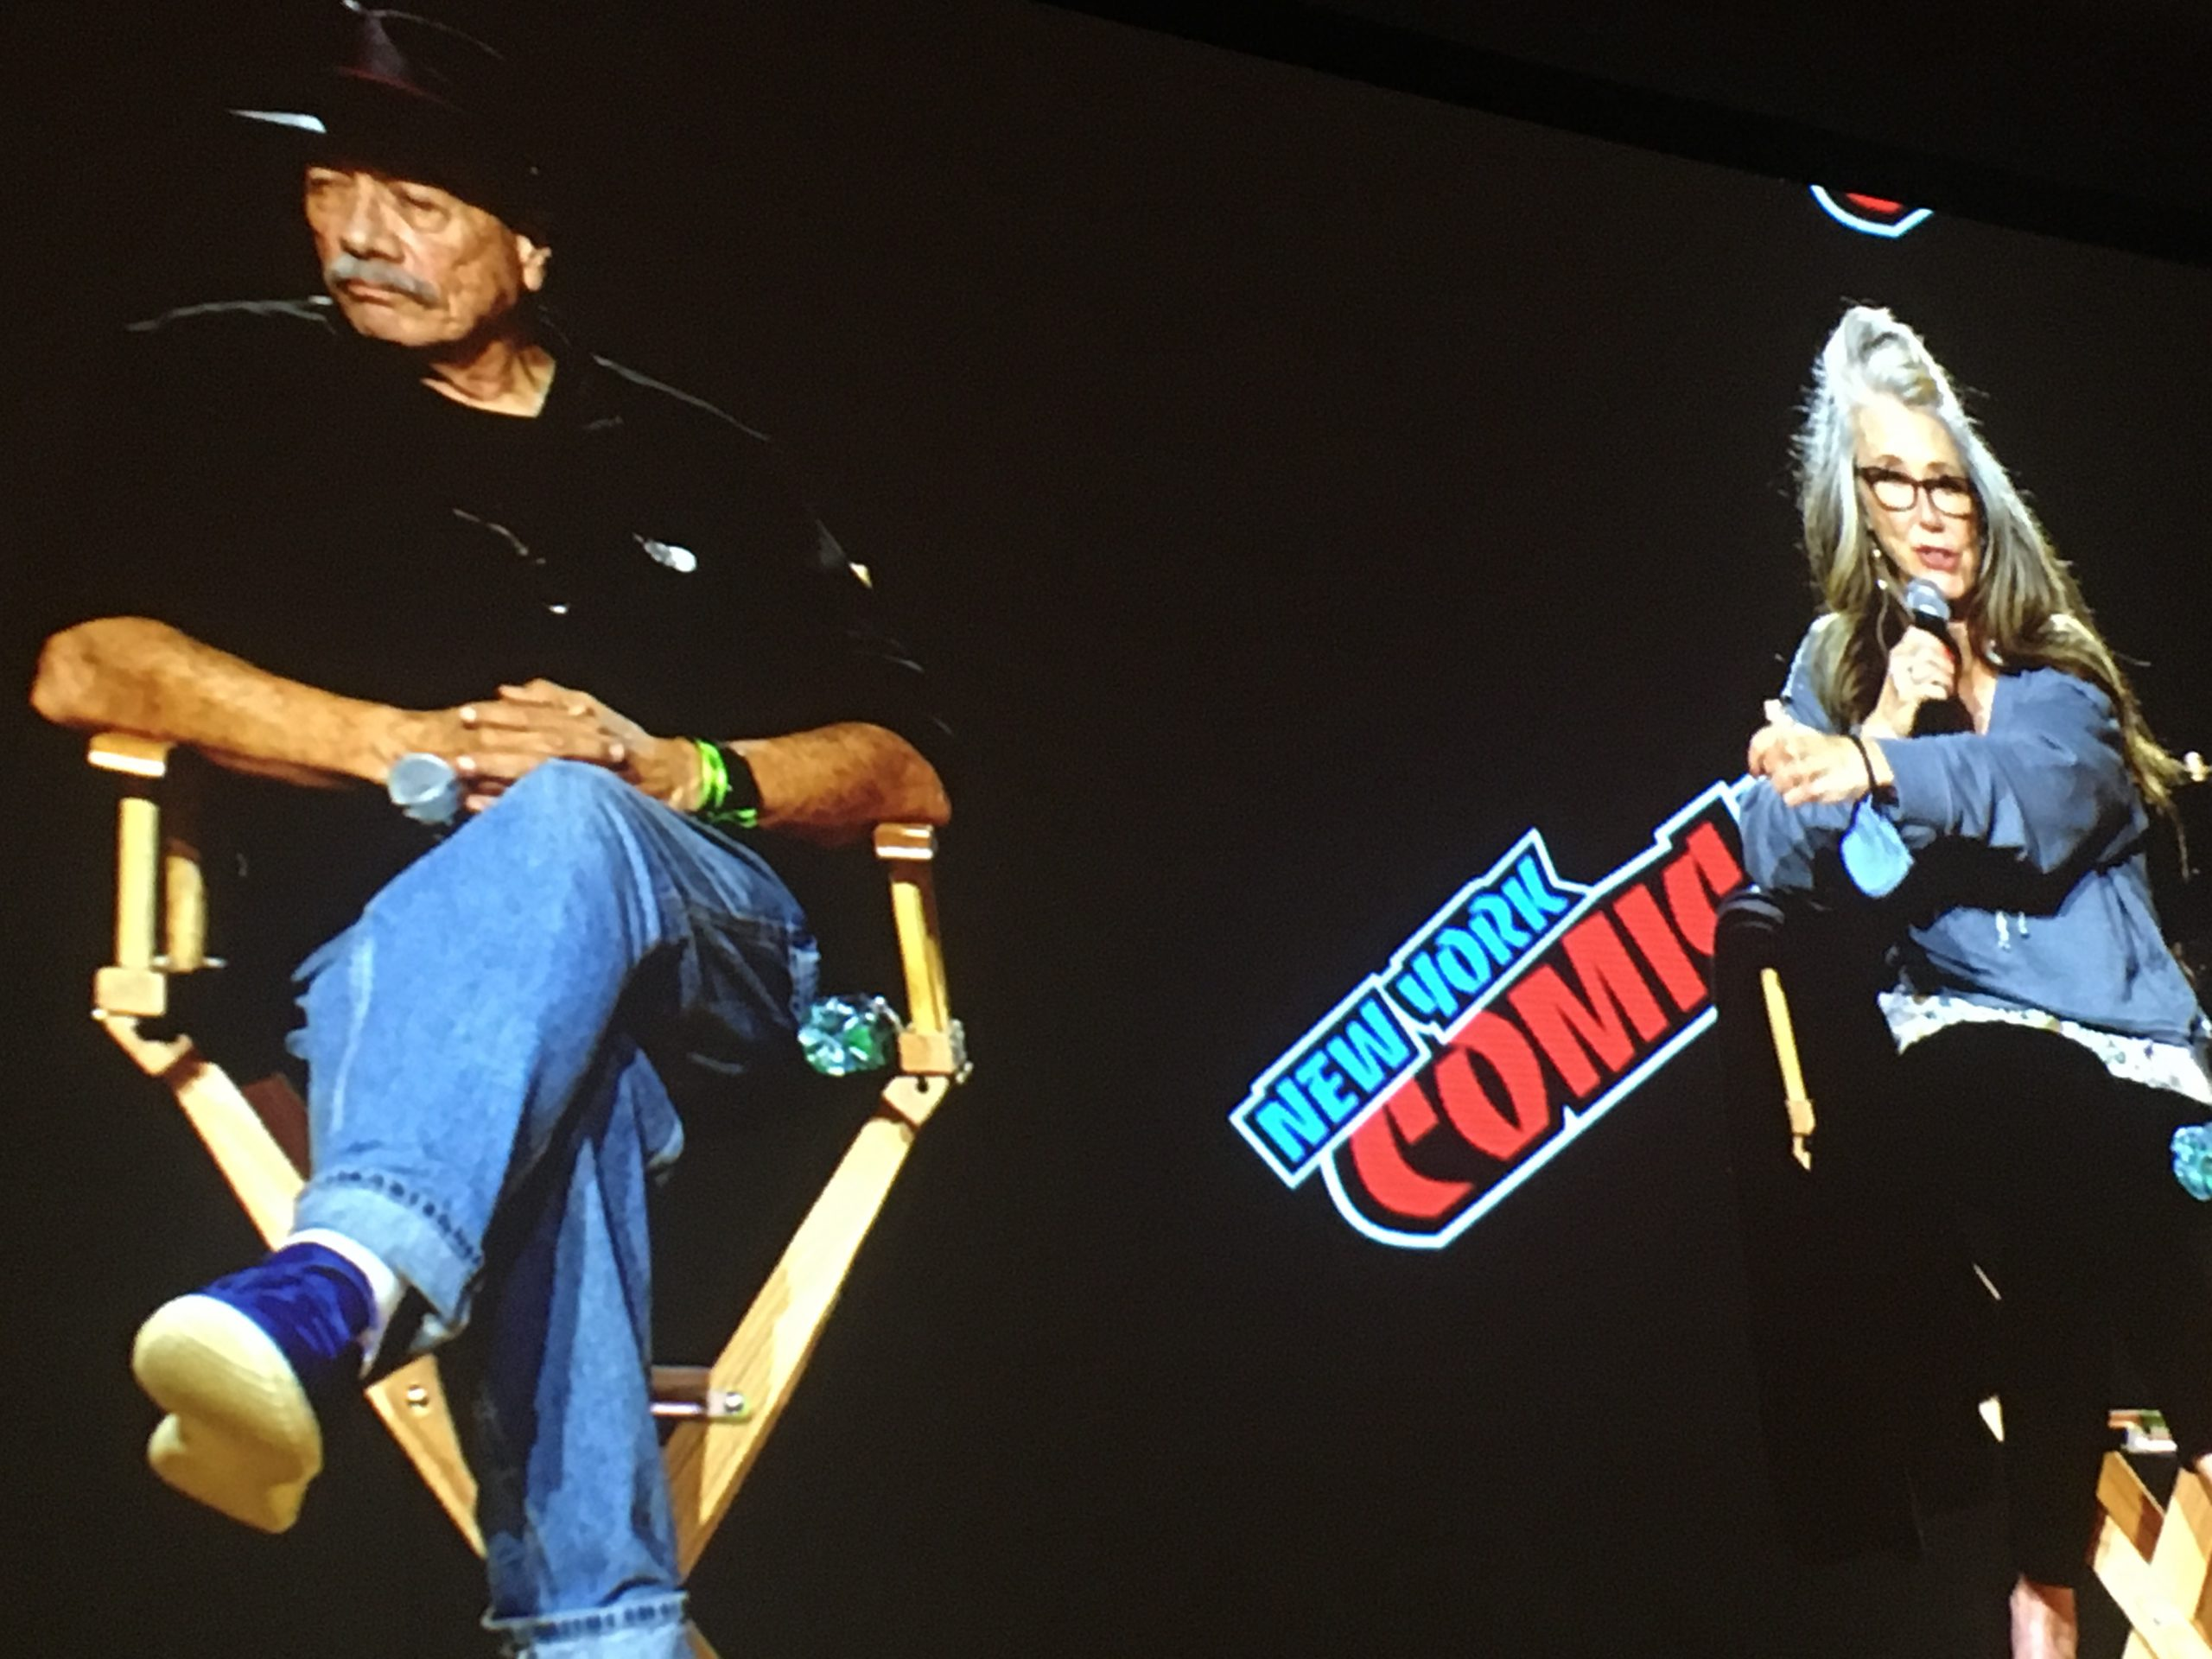 NYCC '21: Battlestar Galactica cast reveal which costar felt betrayed to learn they were a Cylon